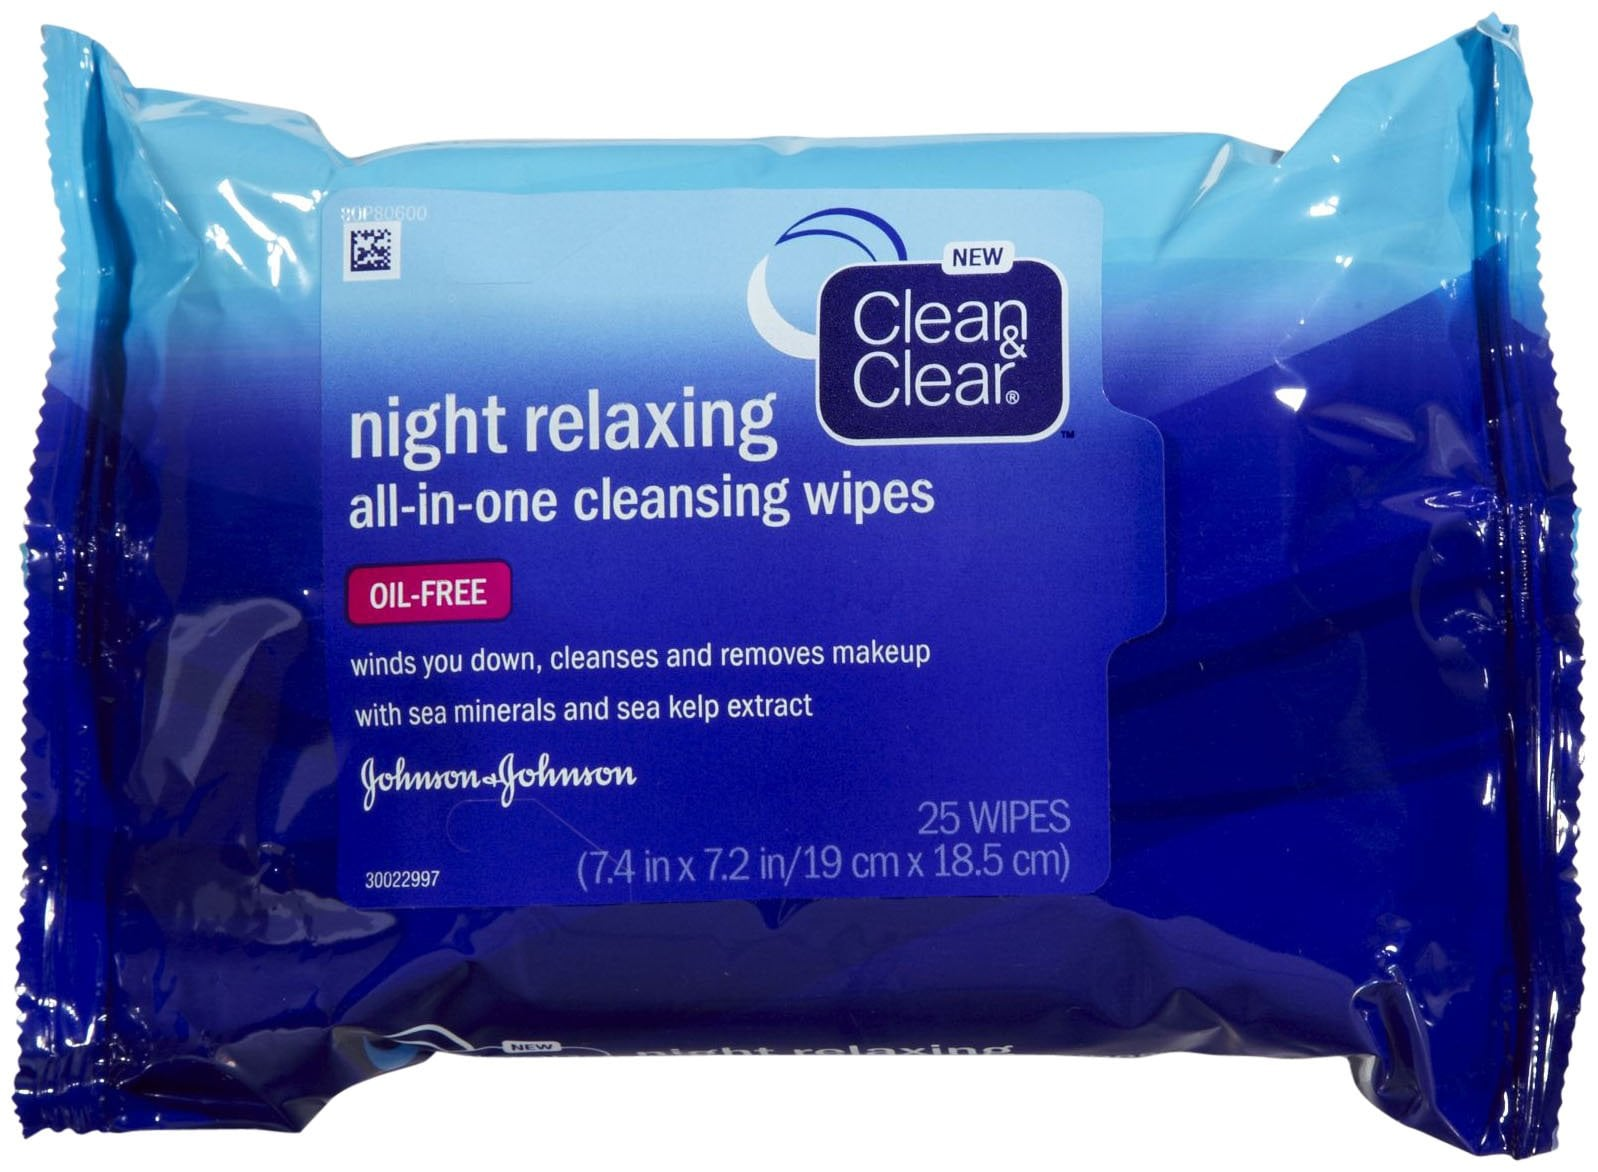 Clean & Clear Night Relaxing All-in-One Cleansing Wipes